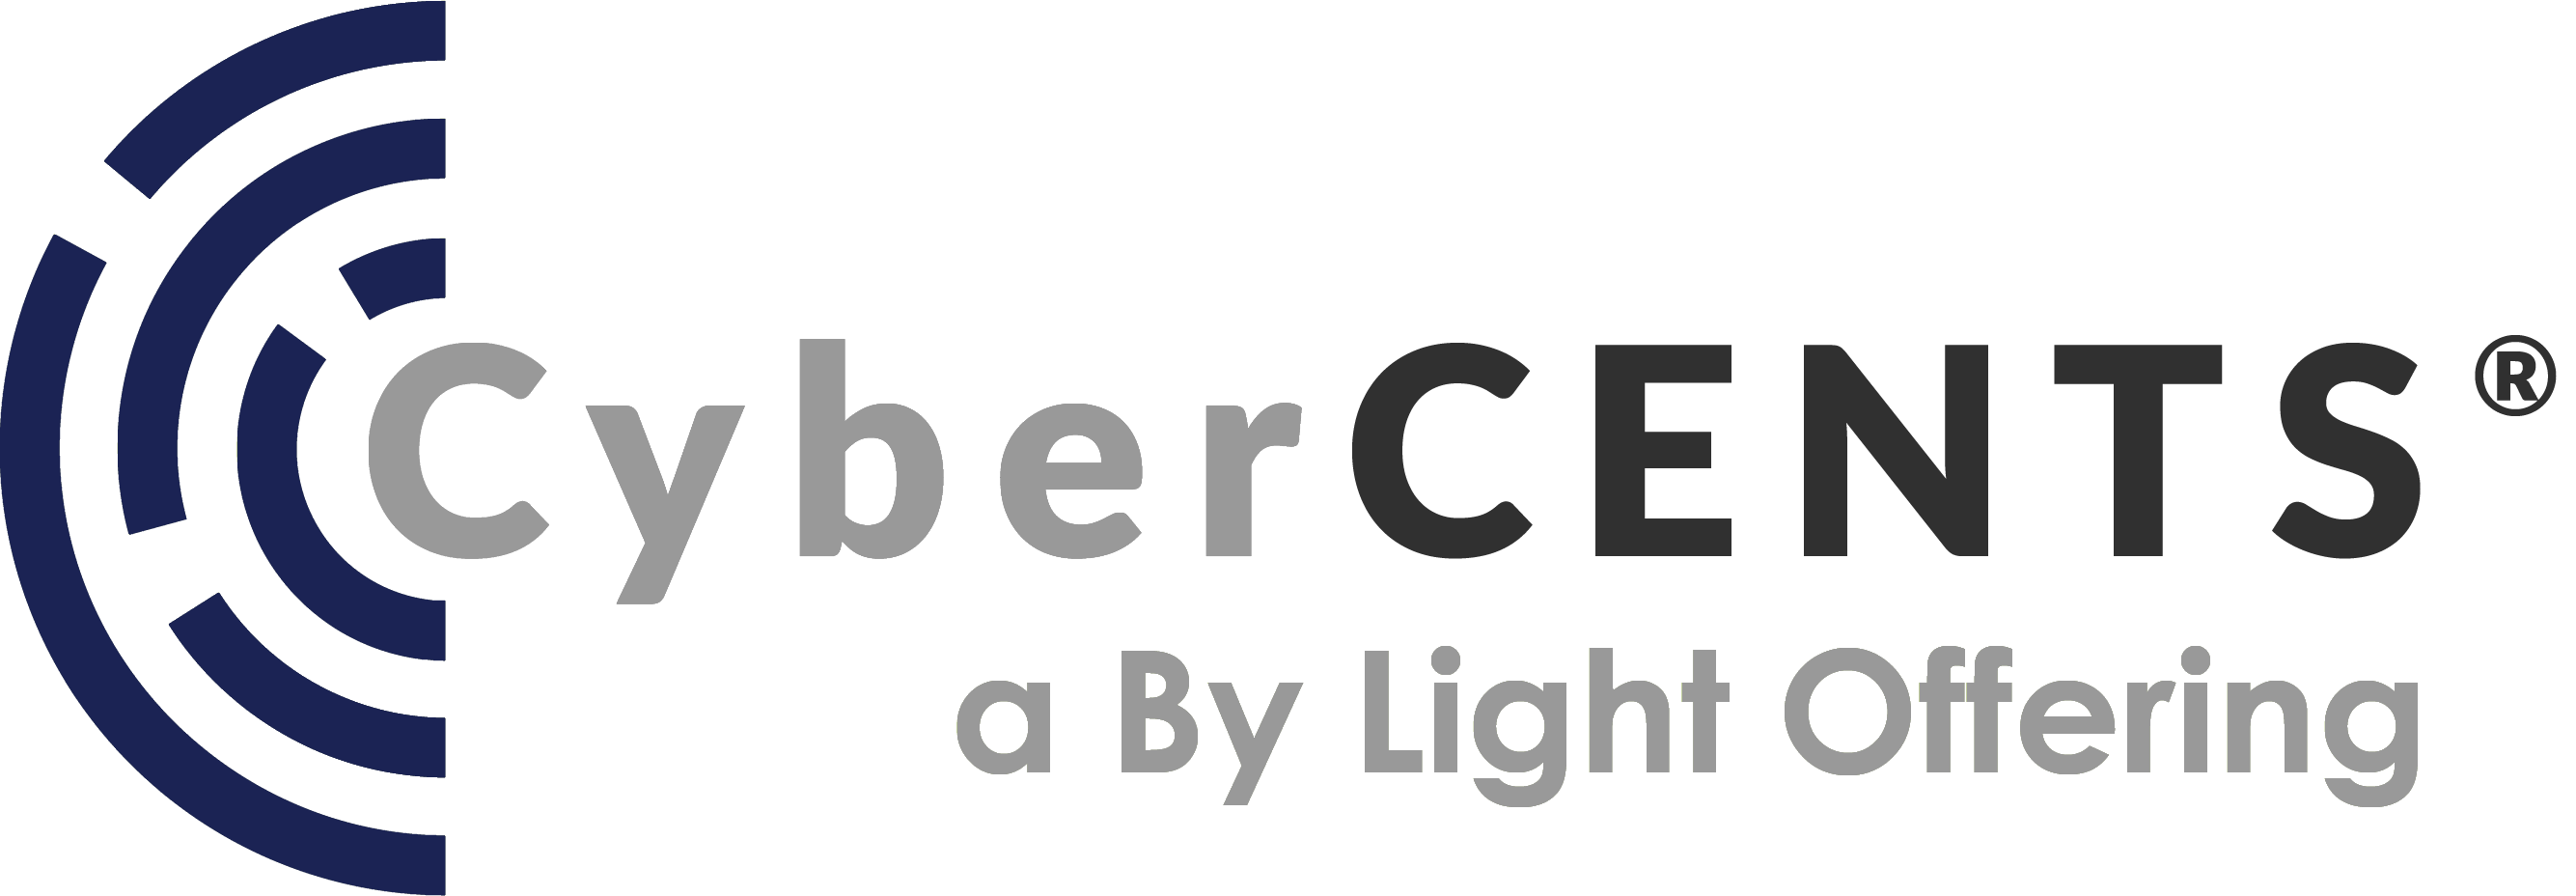 By Light CyberCENTS Logo